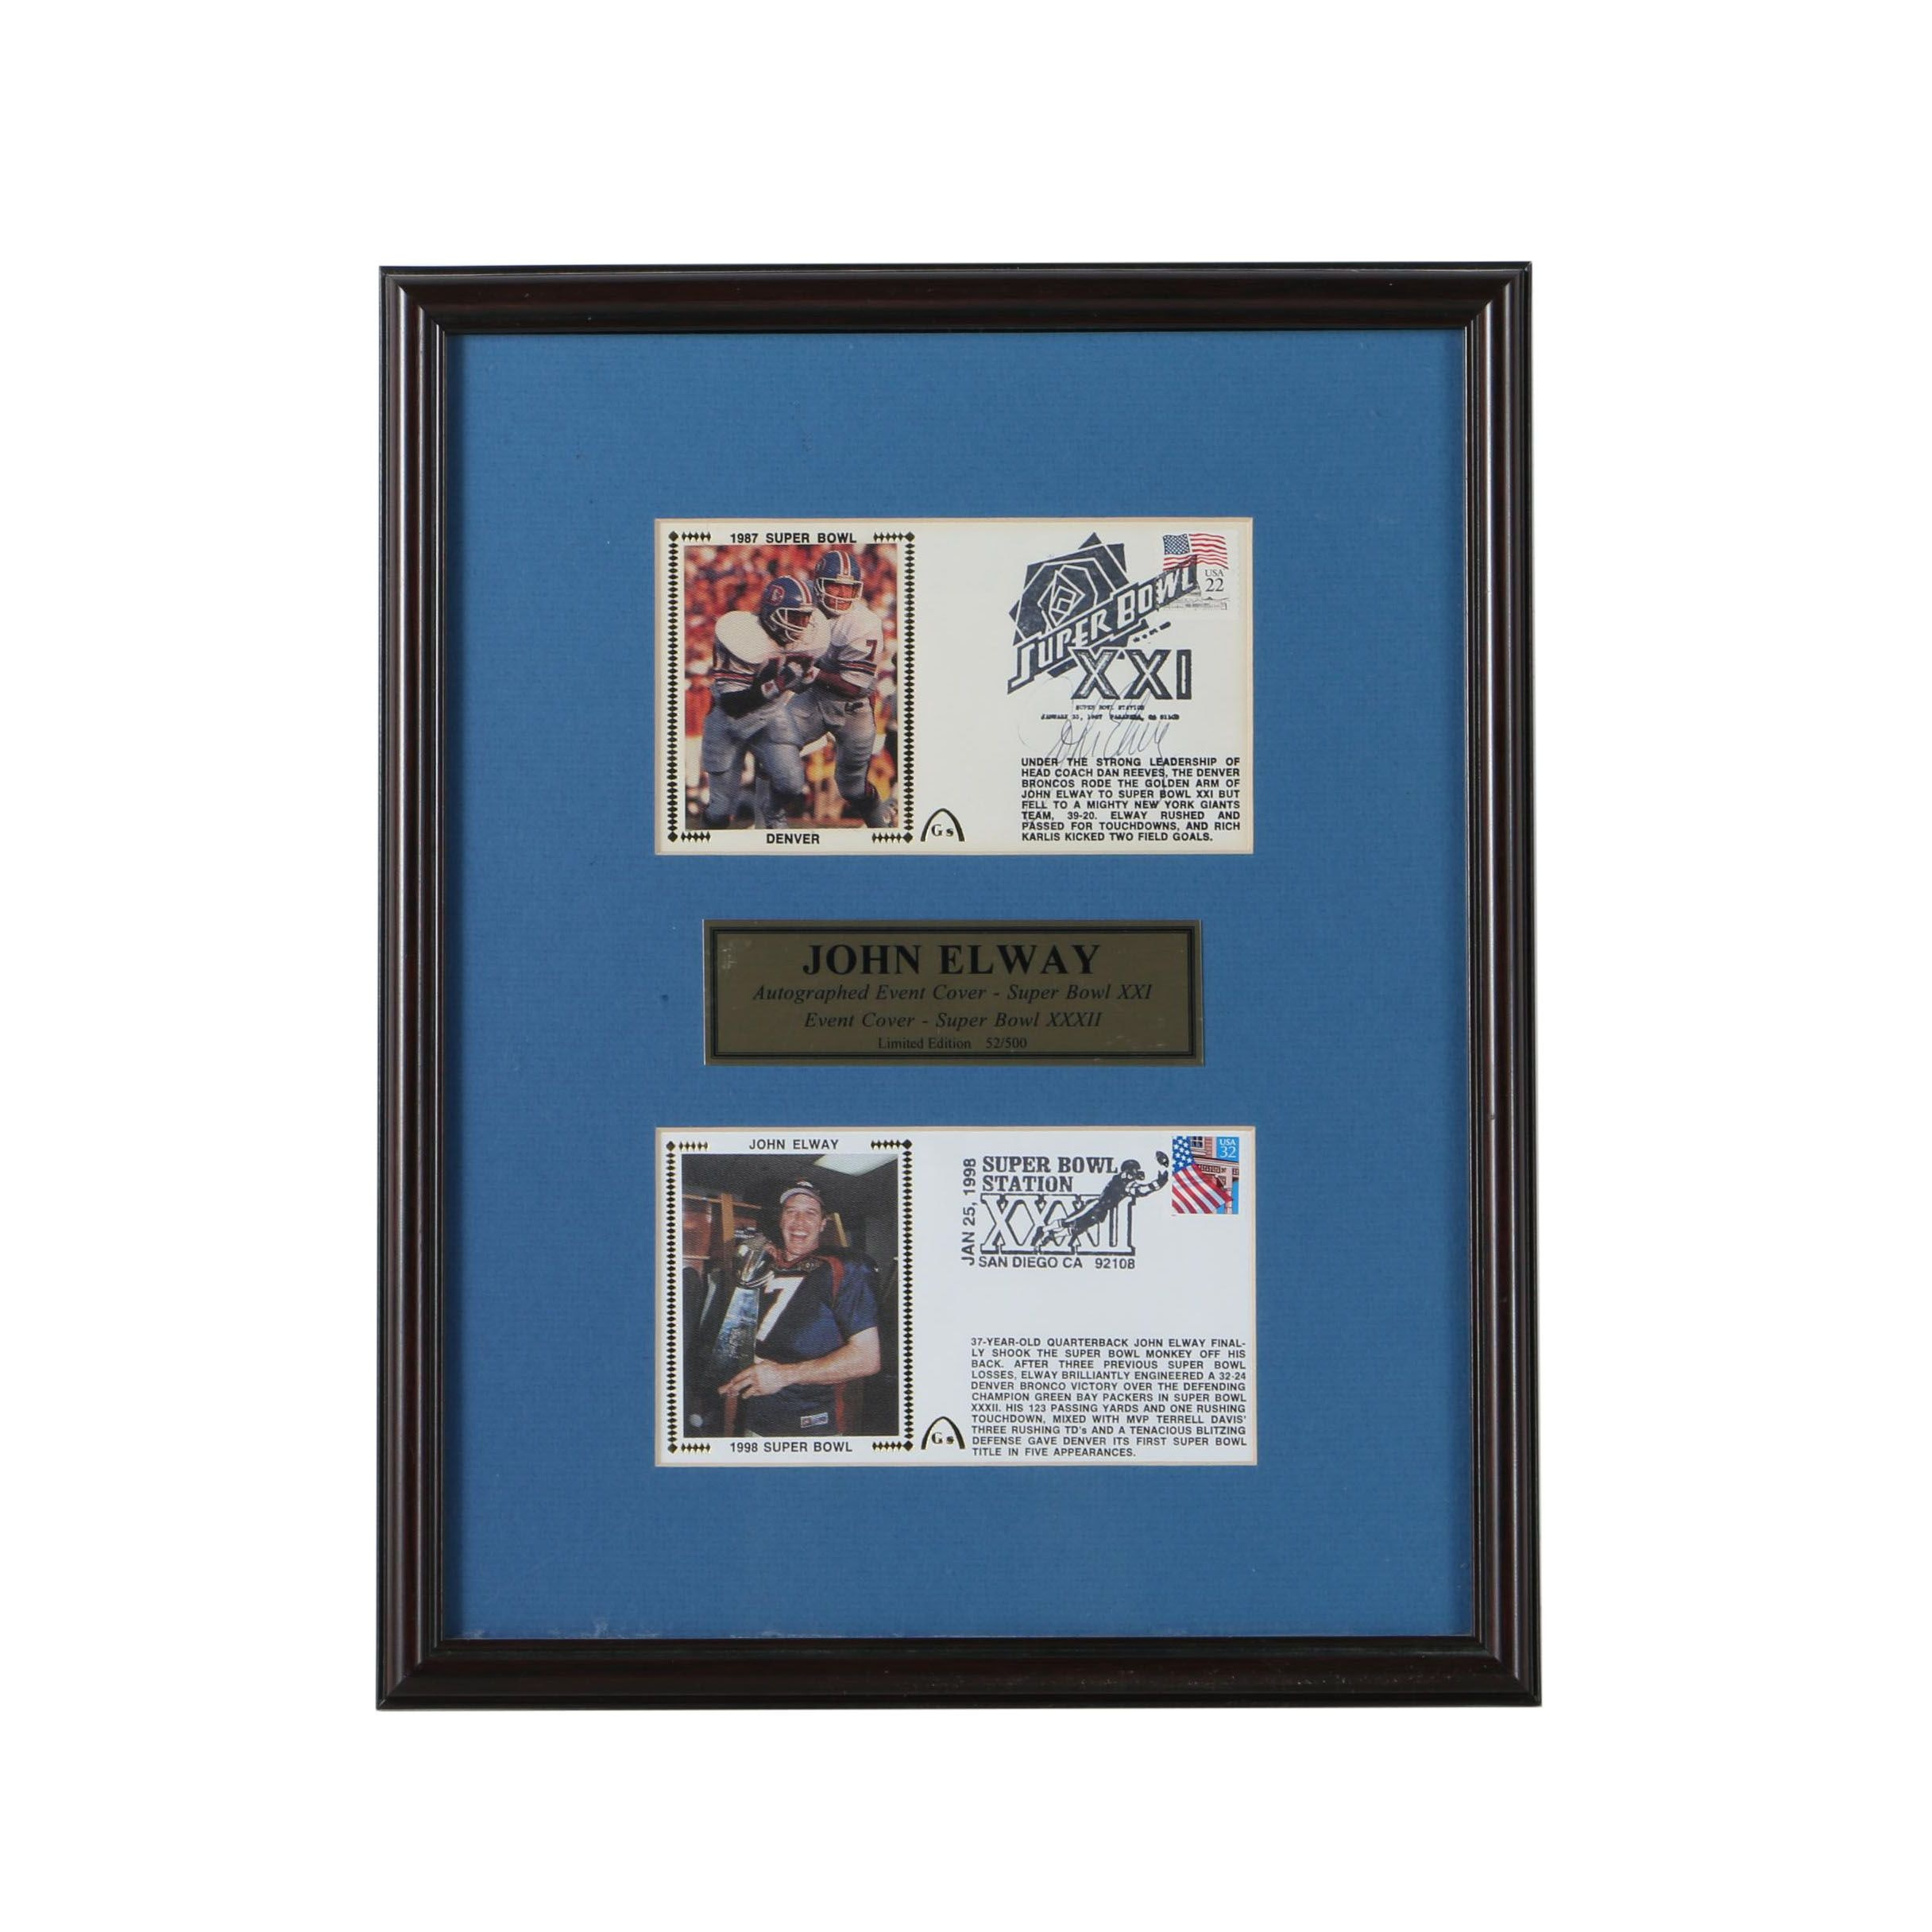 John Elway Autographed Event Cover